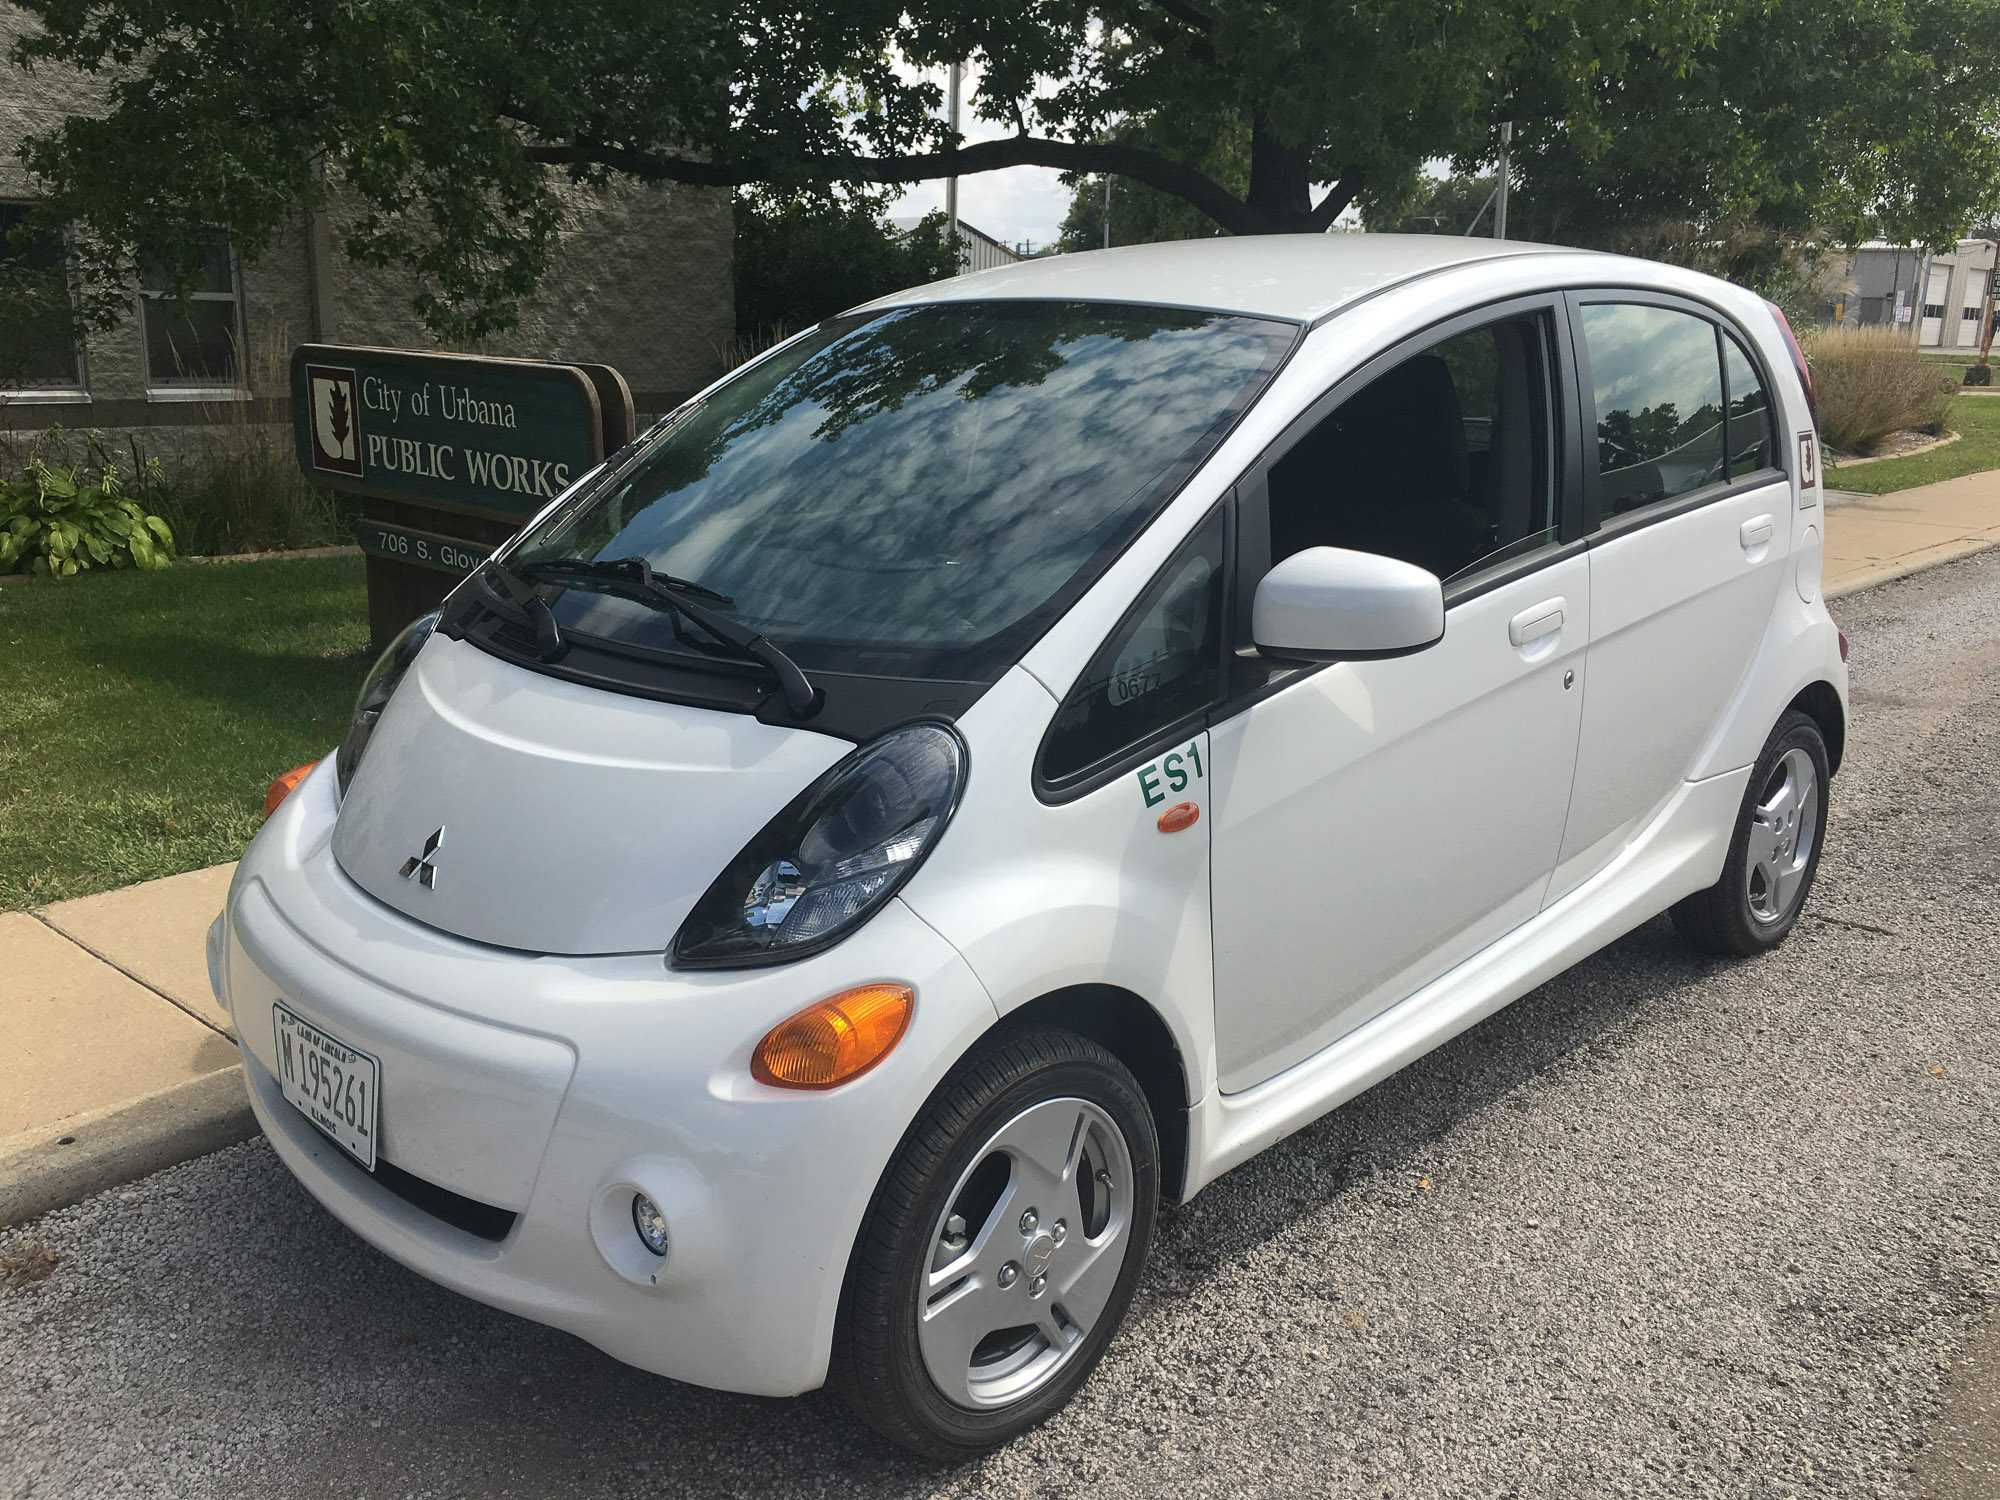 It's just been one month since the City of Urbana purchased its first electric vehicle (EV); a 2016 Mitsubishi i-MiEV, for use in the City's environmental sustainability division.